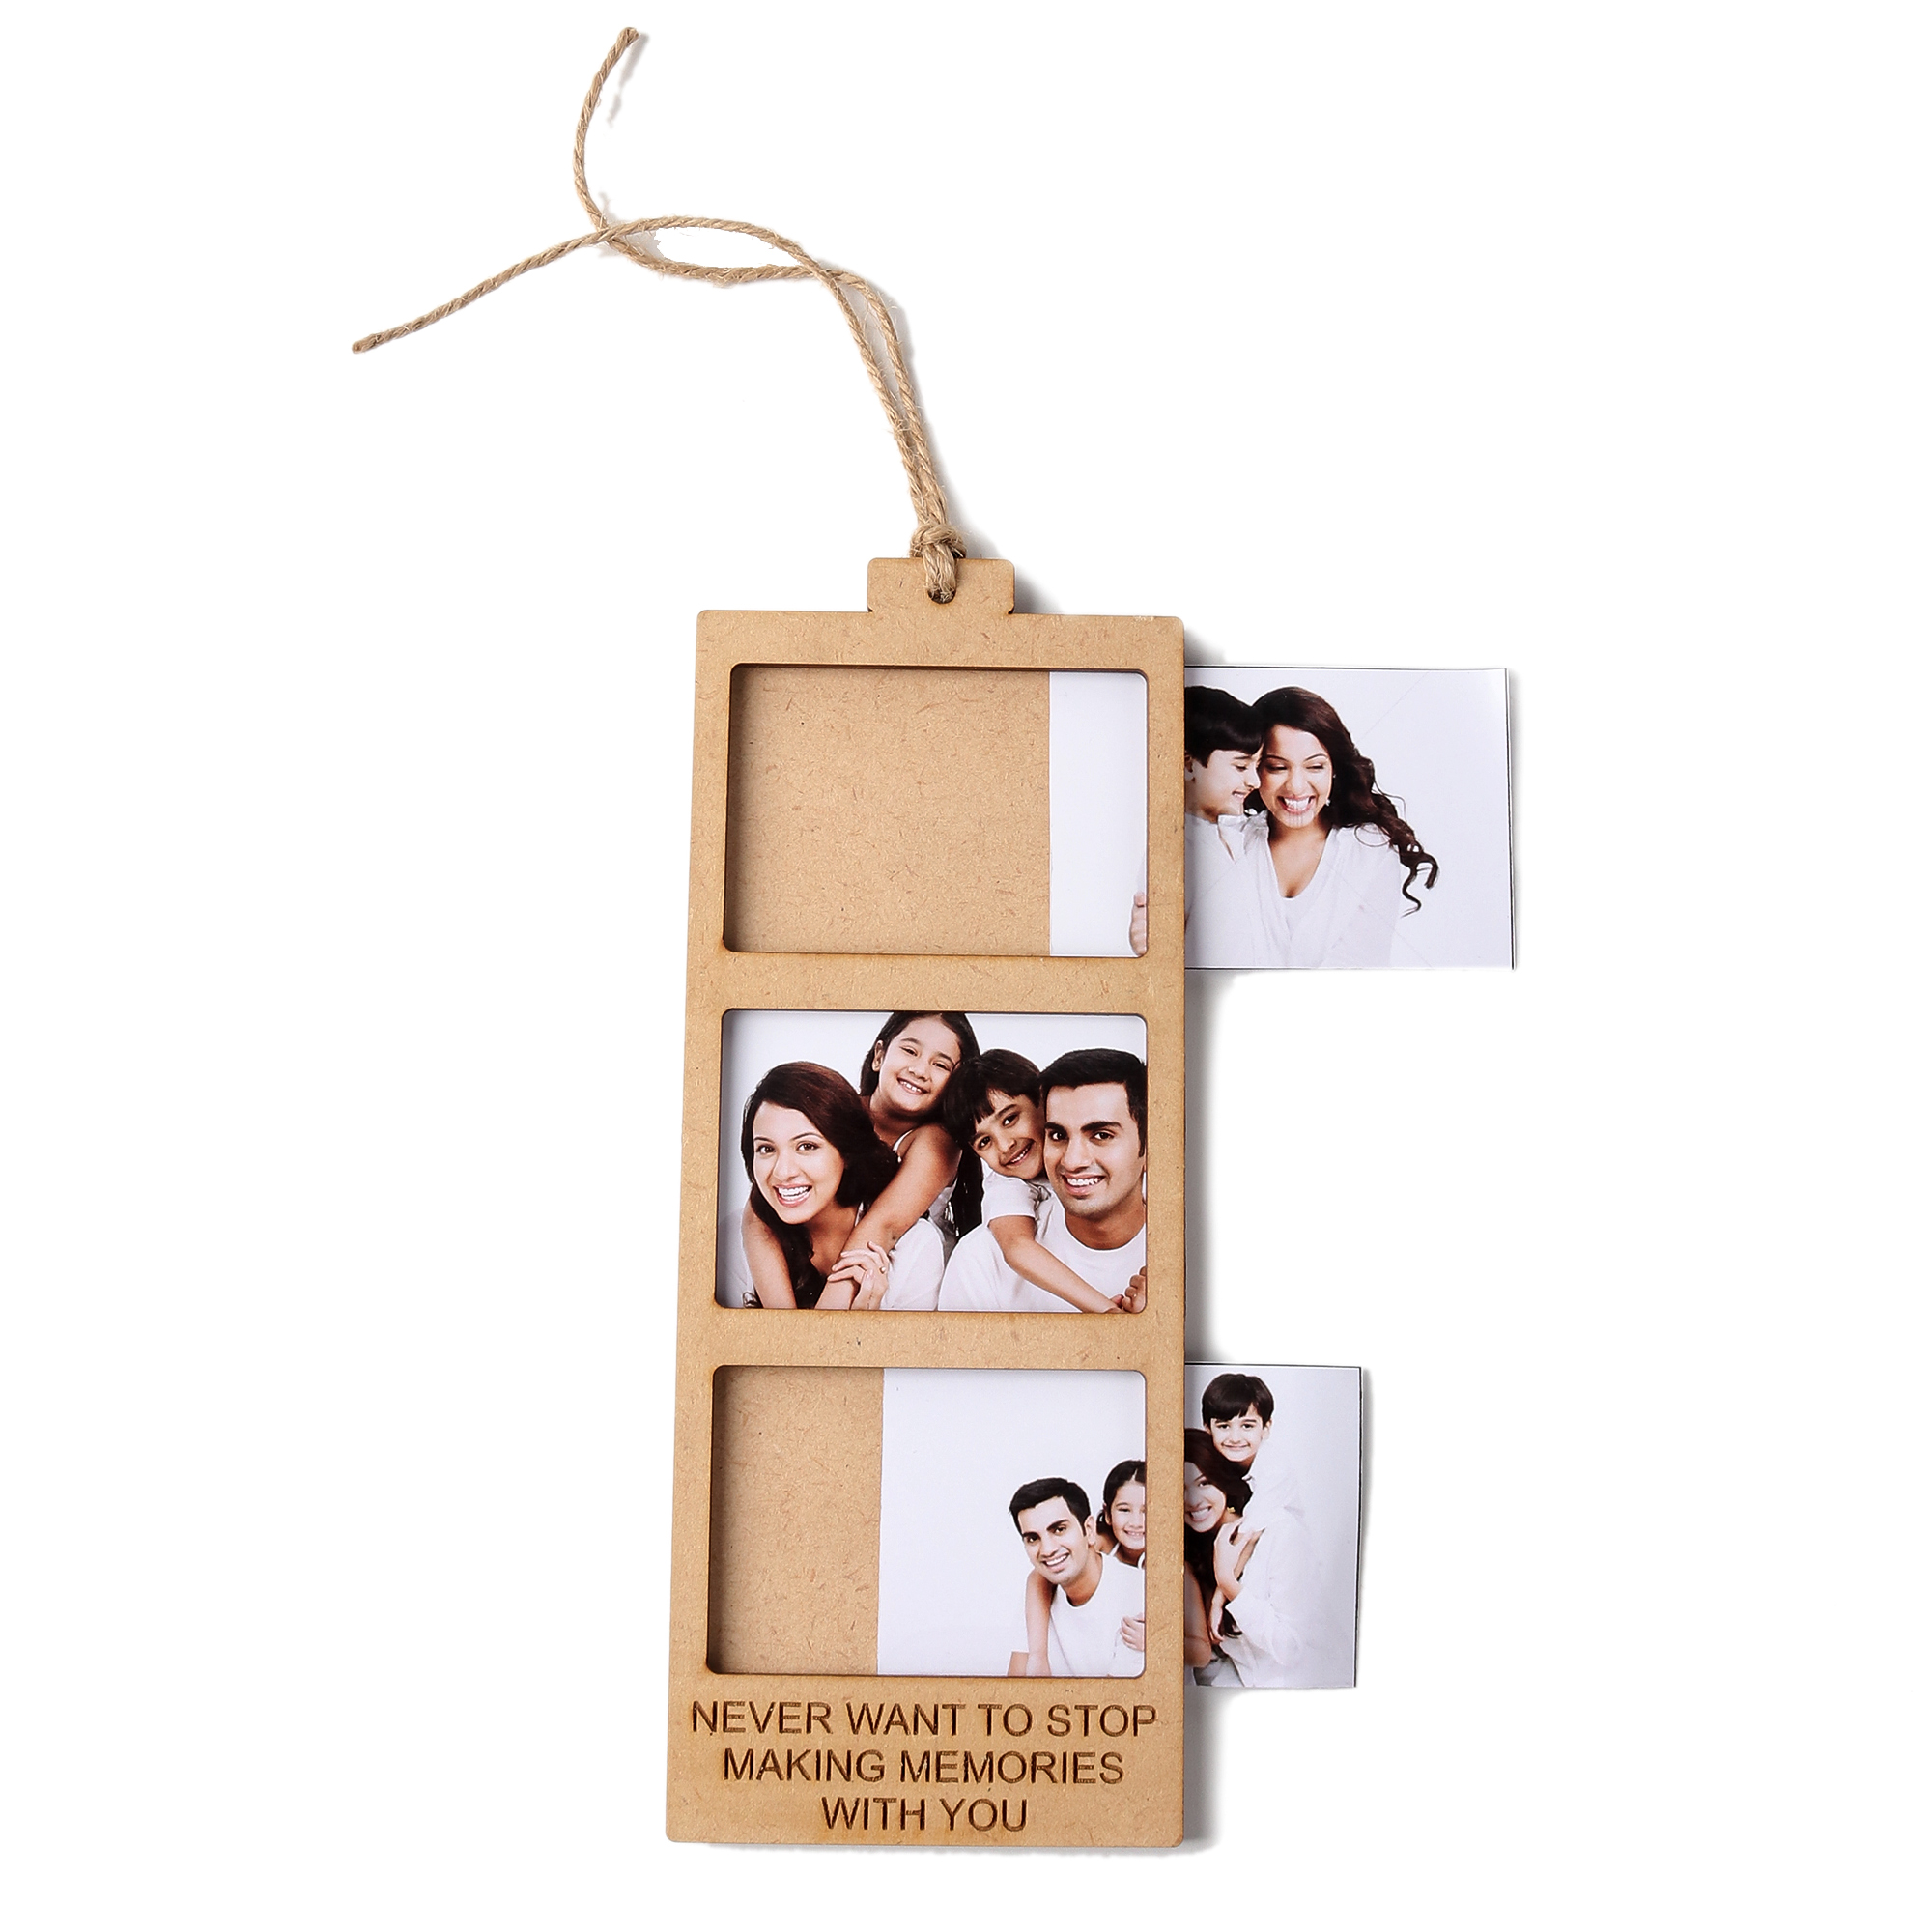 Never Want To Stop Making Memories With You - Polaroid Photo Token ( 3 Images )